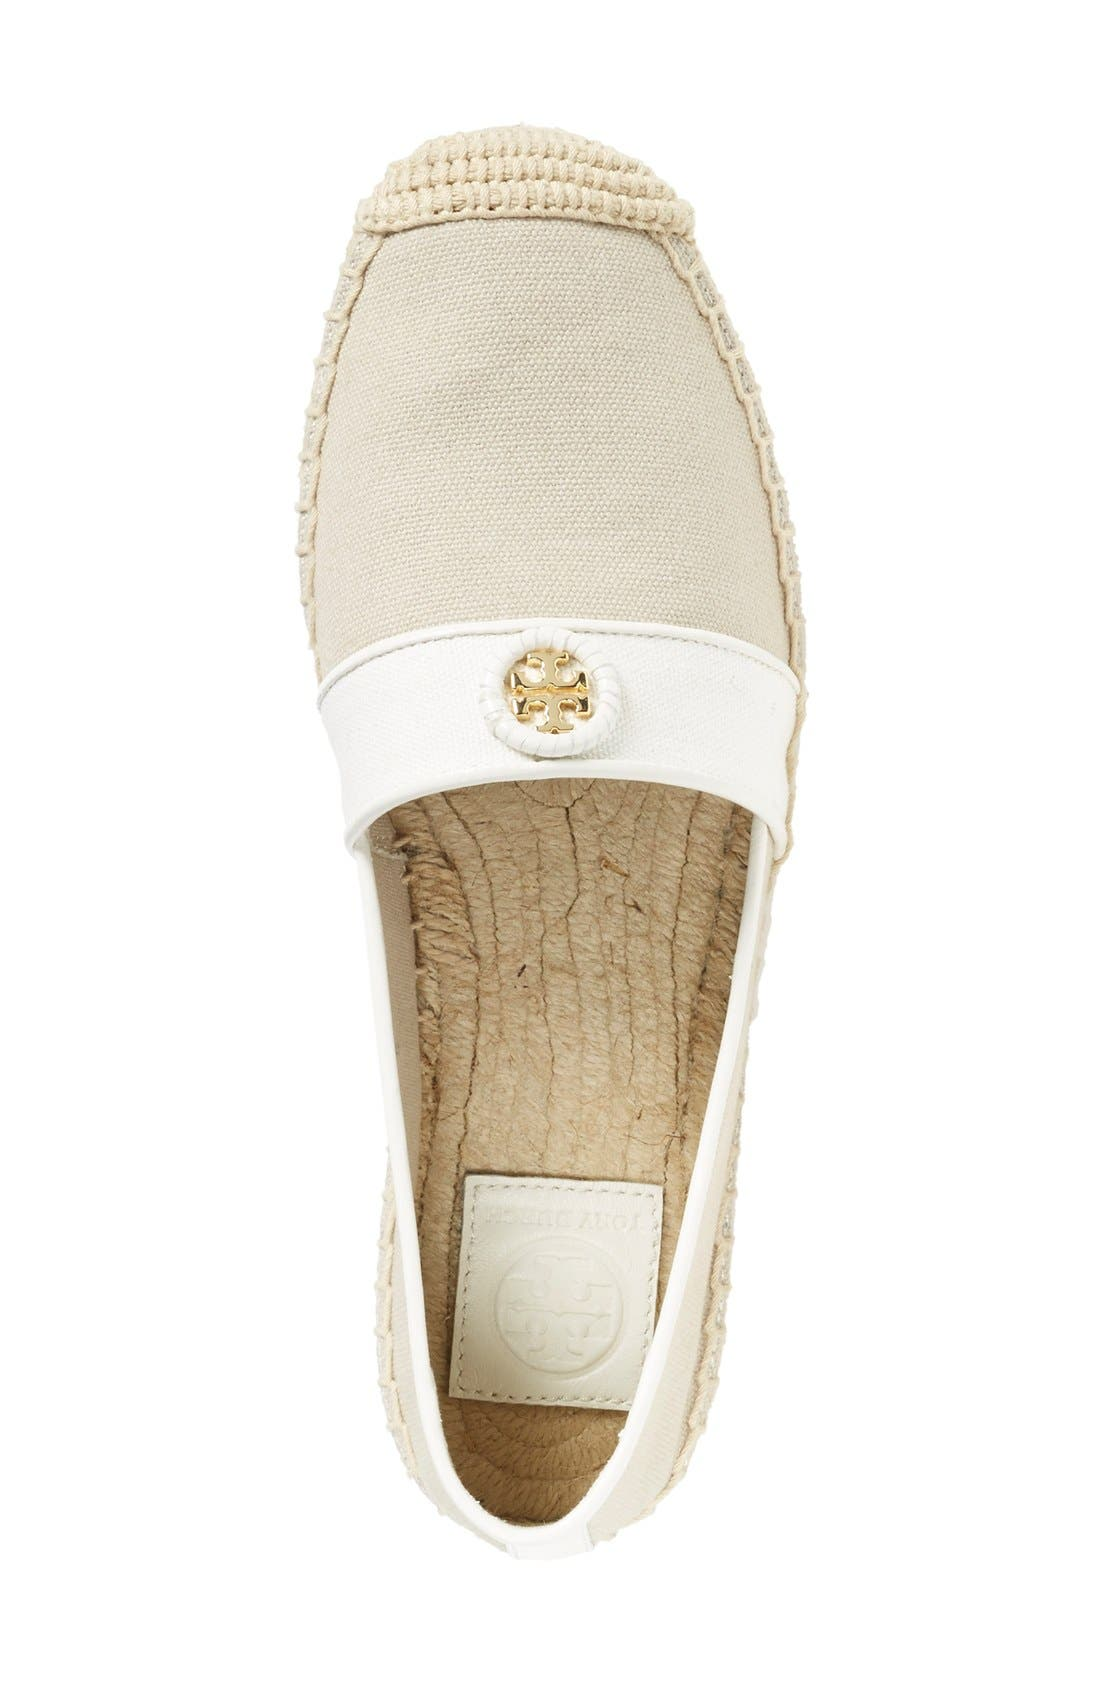 Alternate Image 3  - Tory Burch 'Lacey' Espadrille Flat (Women) (Nordstrom Exclusive)